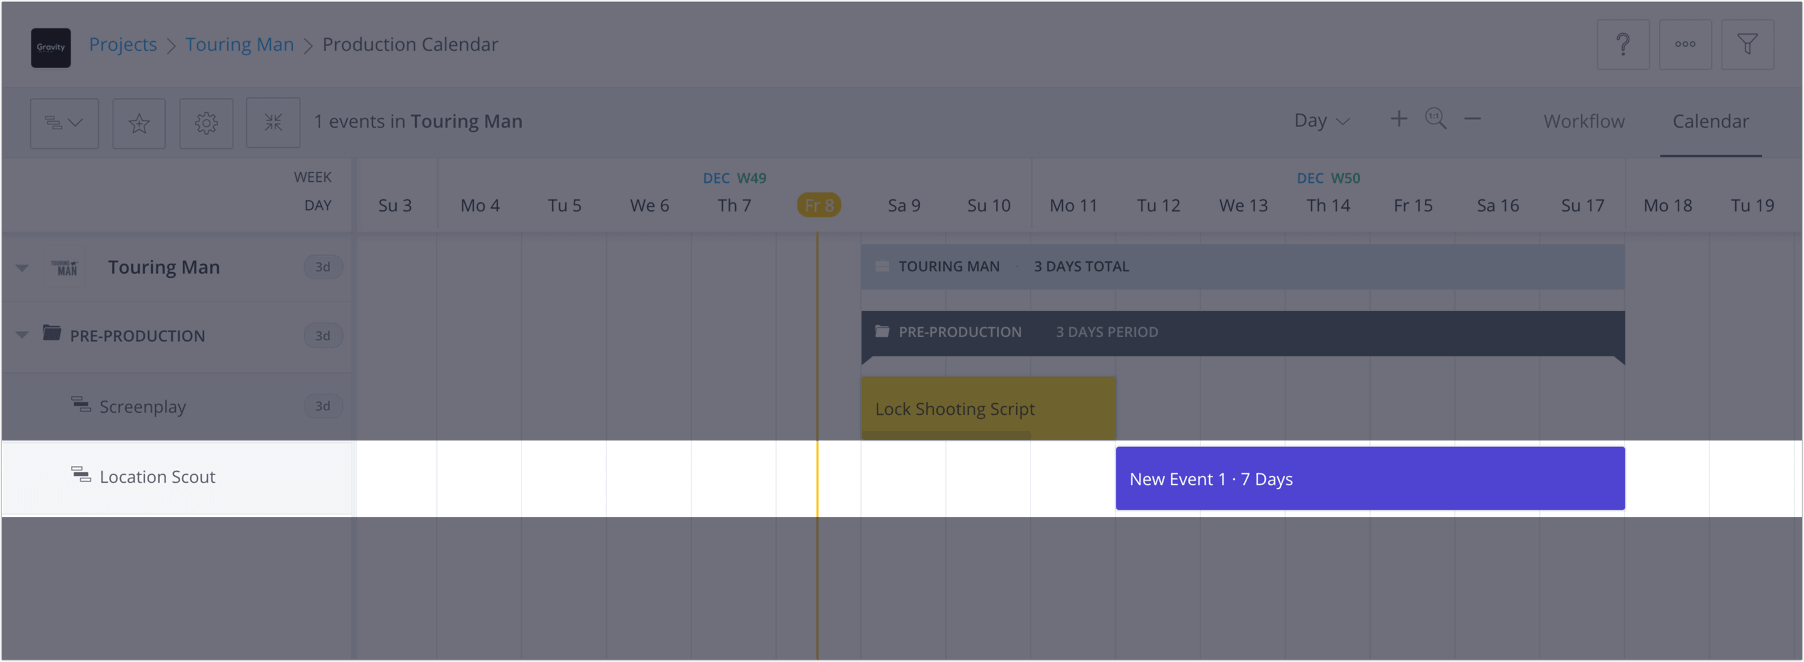 How to Plan a Shoot with a Film & Video Production Calendar - StudioBinder - 6a